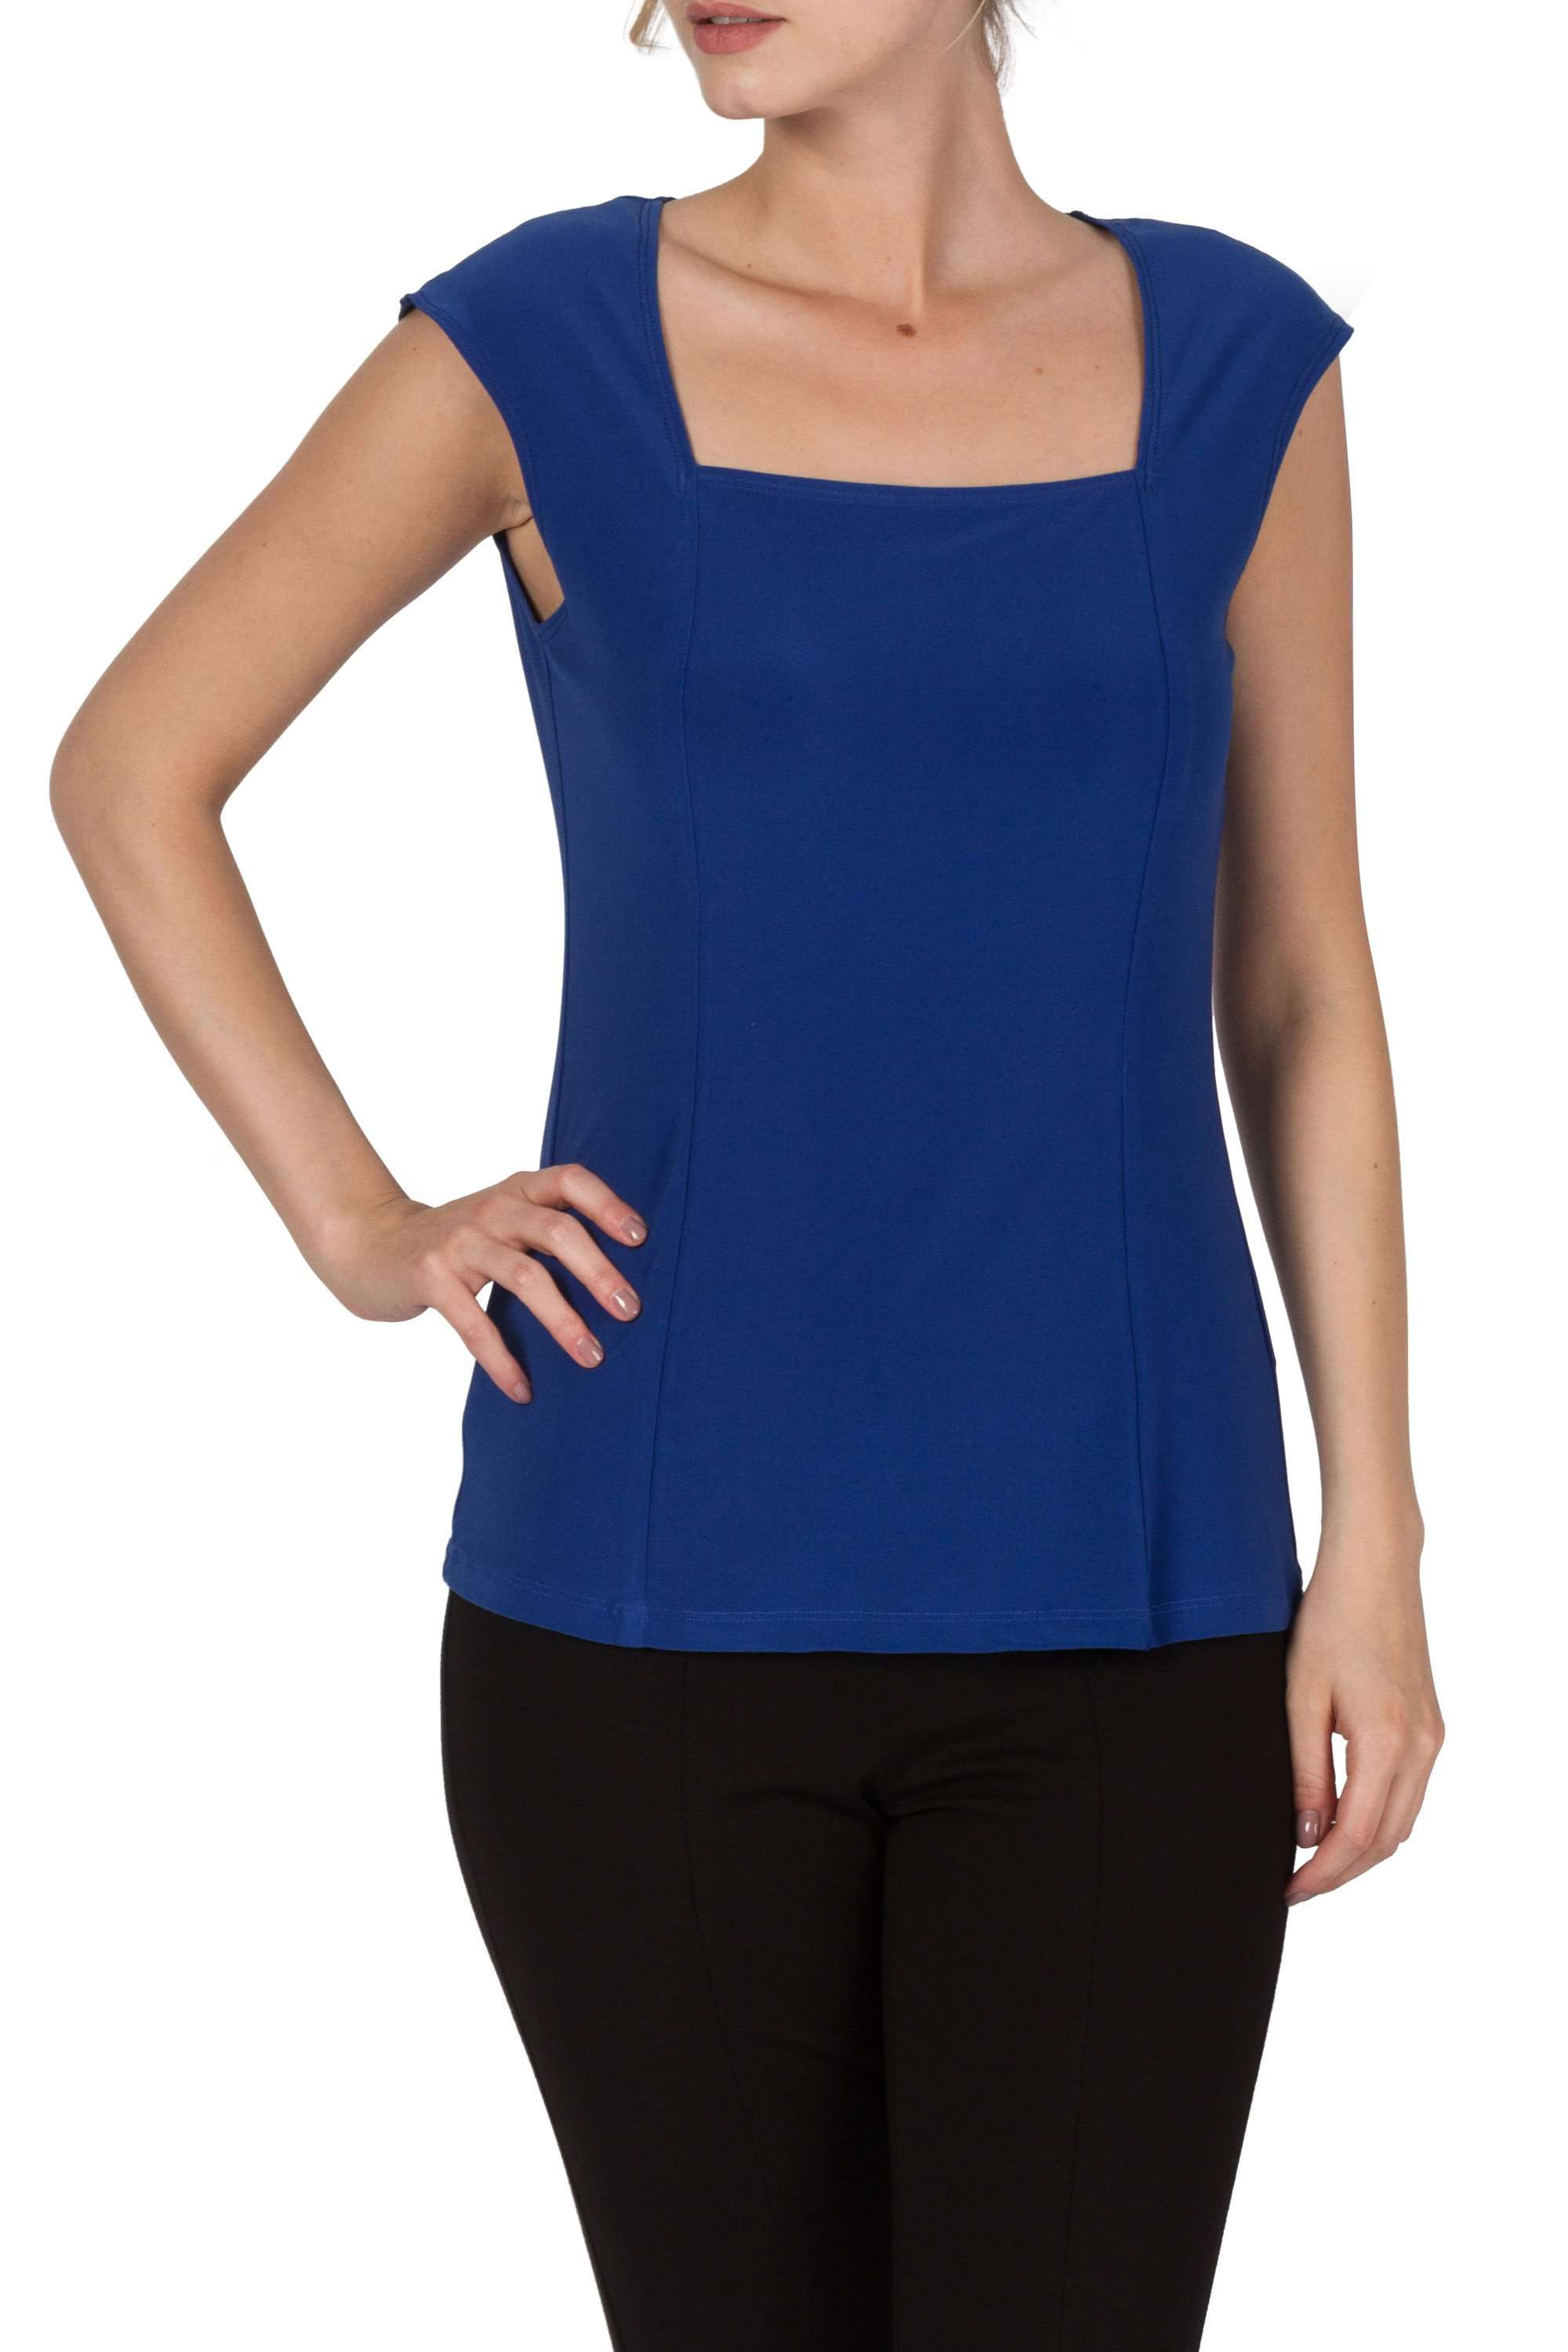 Royal Blue Camisole Tank Top-Best Seller-Quality guaranteed-Made In Canada - Yvonne Marie